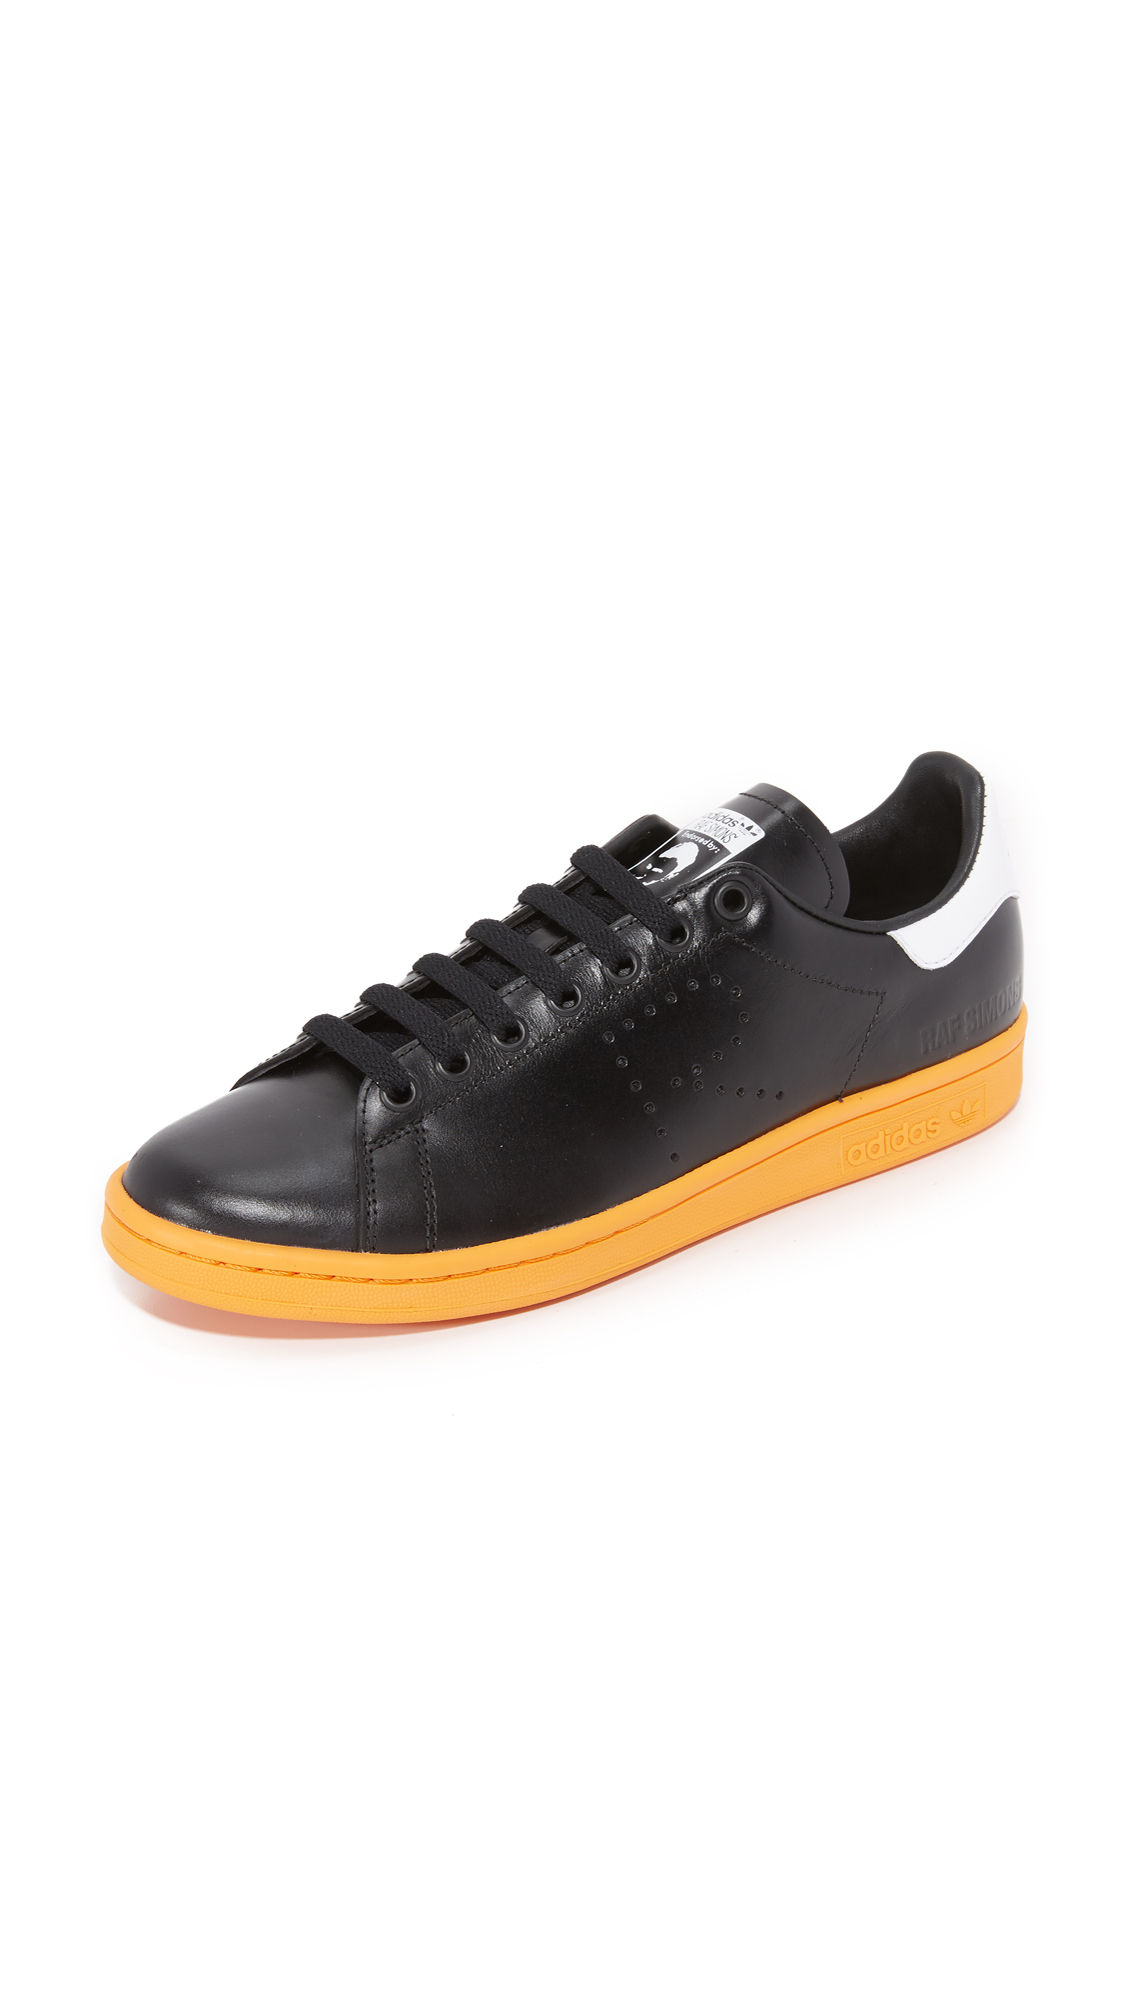 Adidas Raf Simons Stan Smith Sneakers - Black/White/Bright Orange at Shopbop